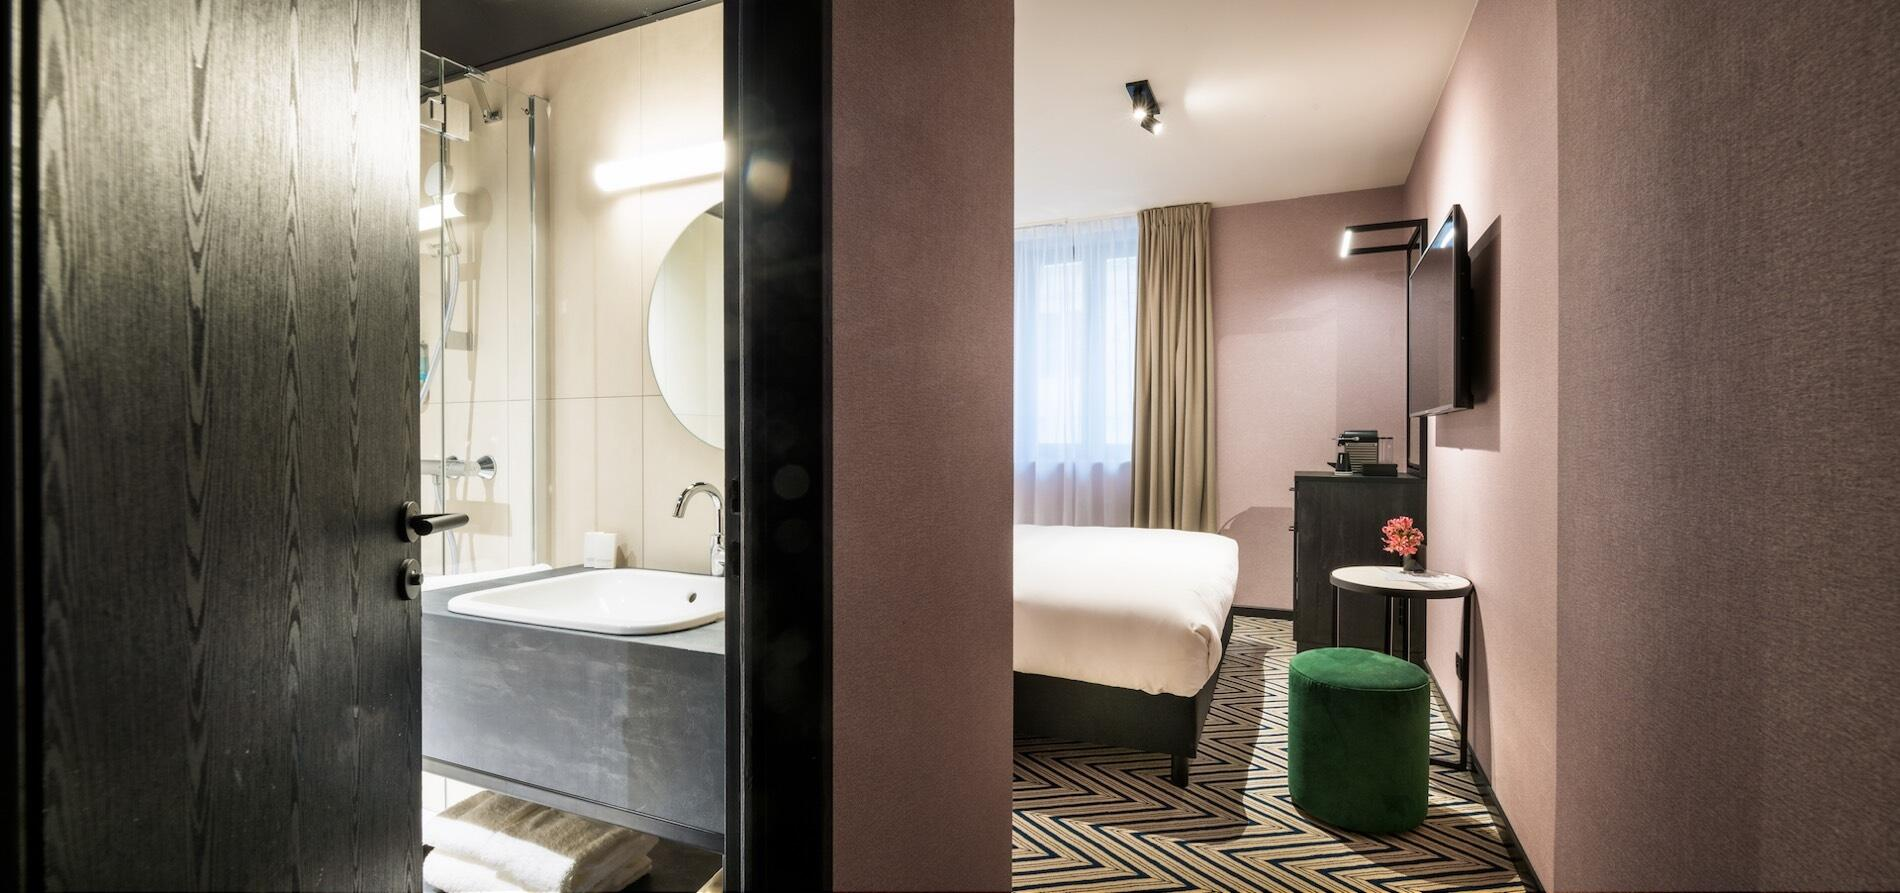 Bathroom and bedroom at Hotel Hubert Brussels